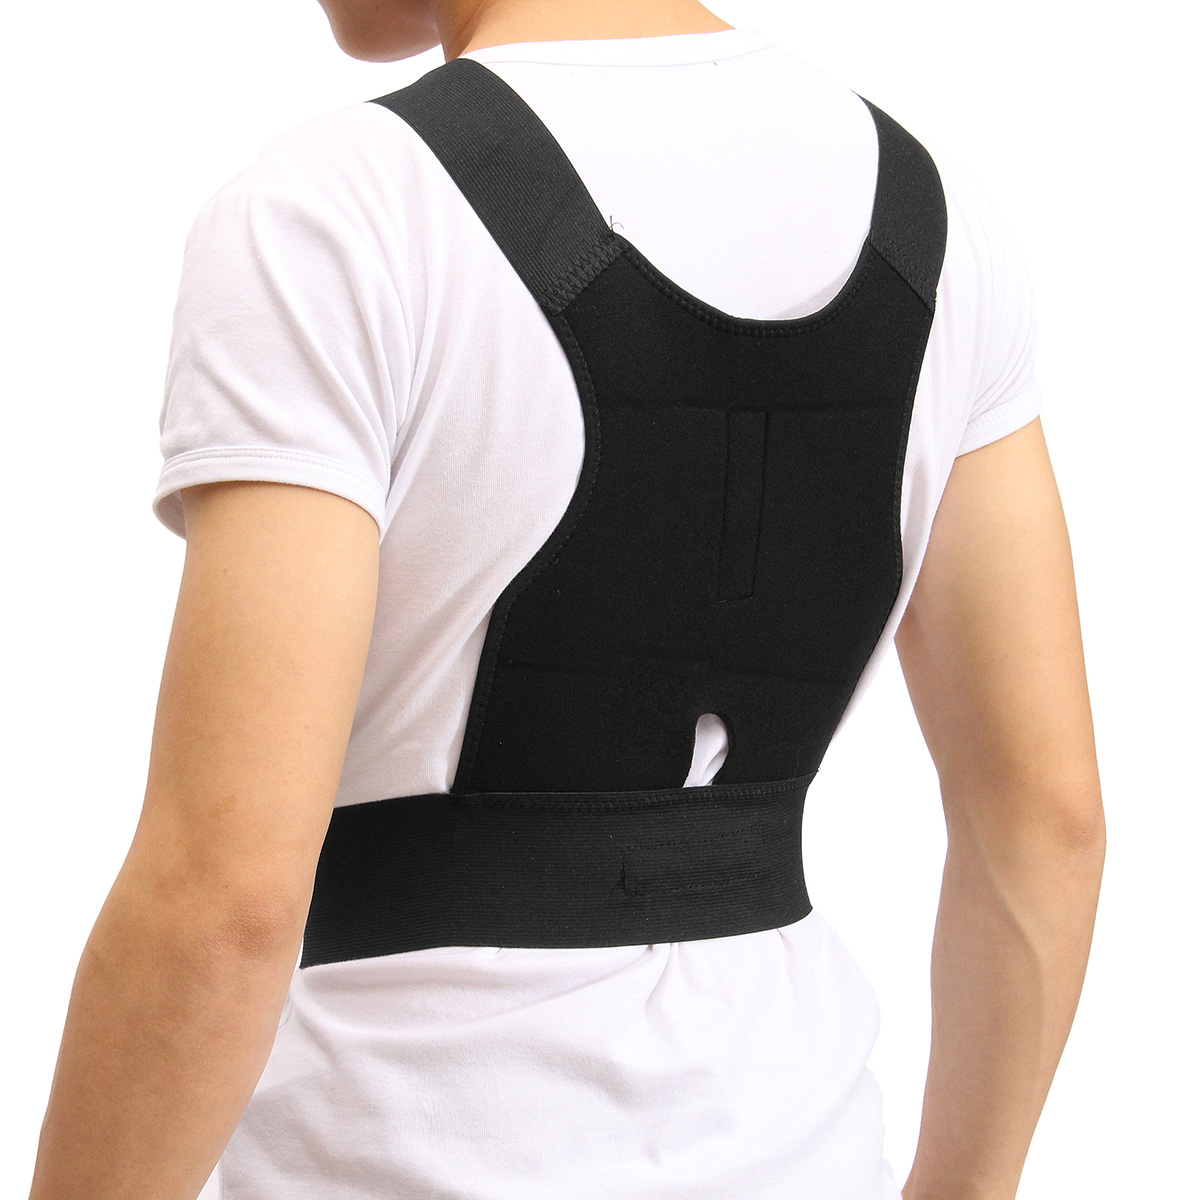 Adjustable Back Support Posture Corrector Belt Shoulder